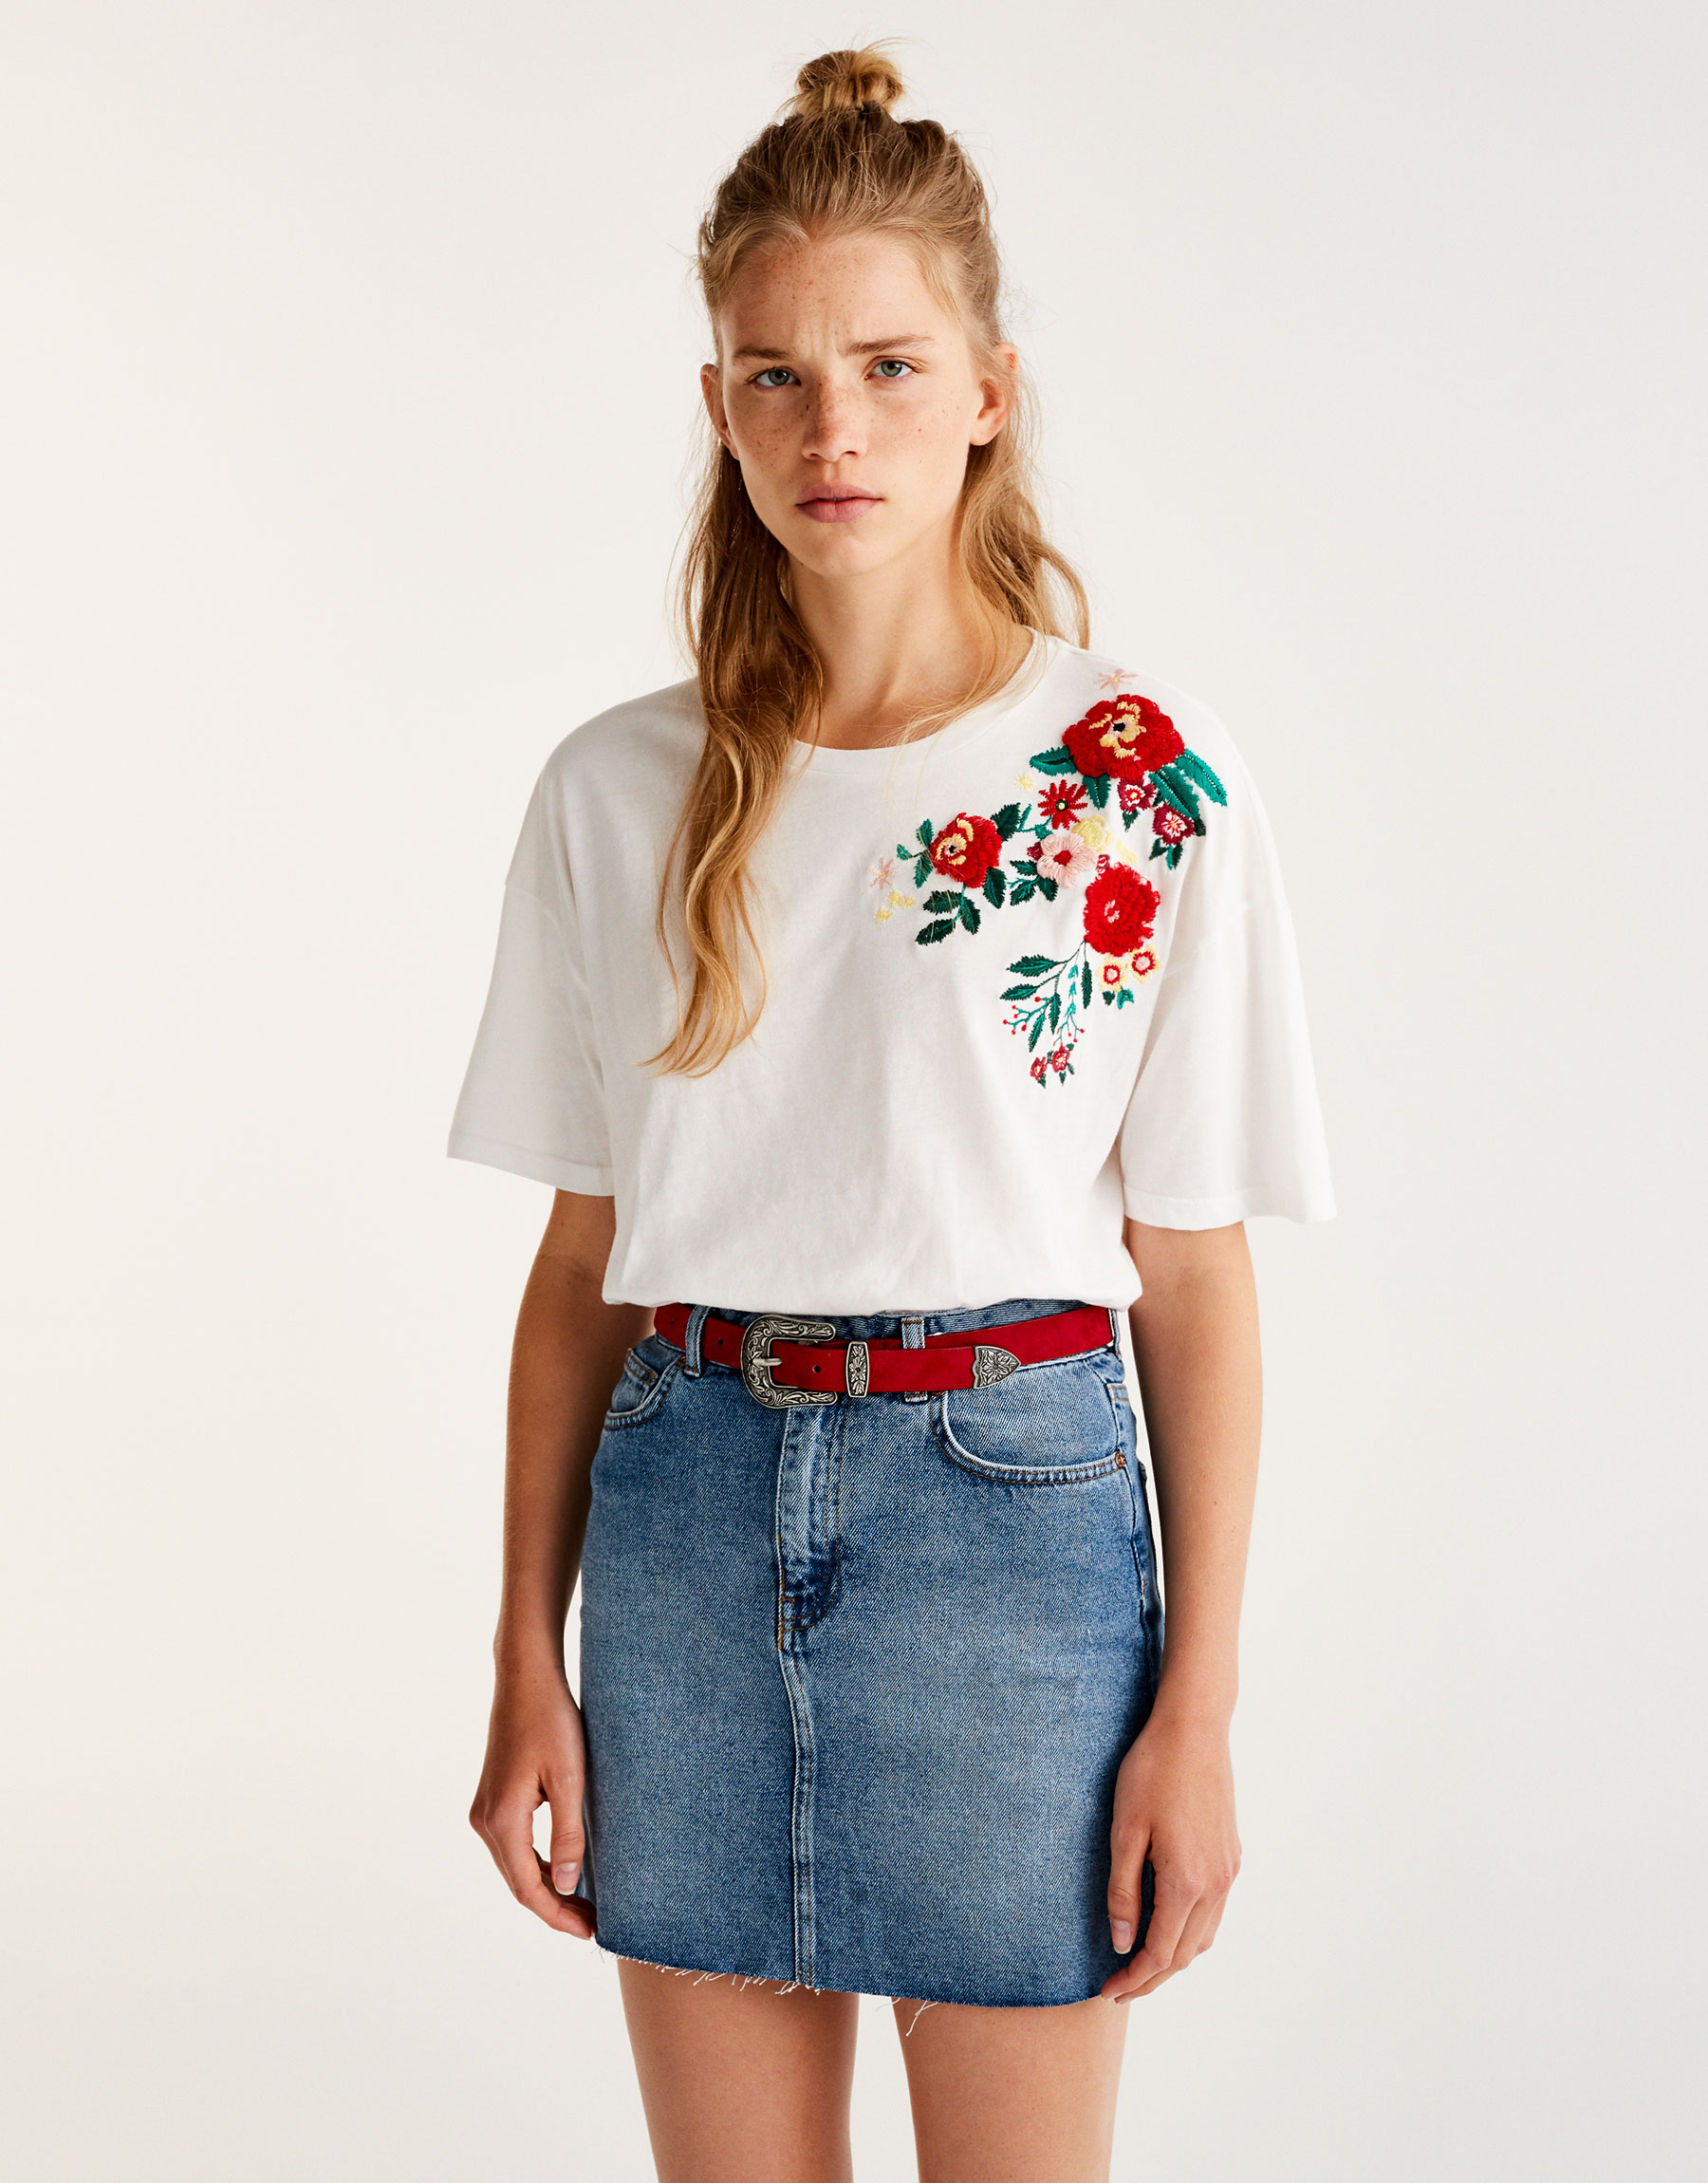 T-shirt with floral embroidery on shoulders